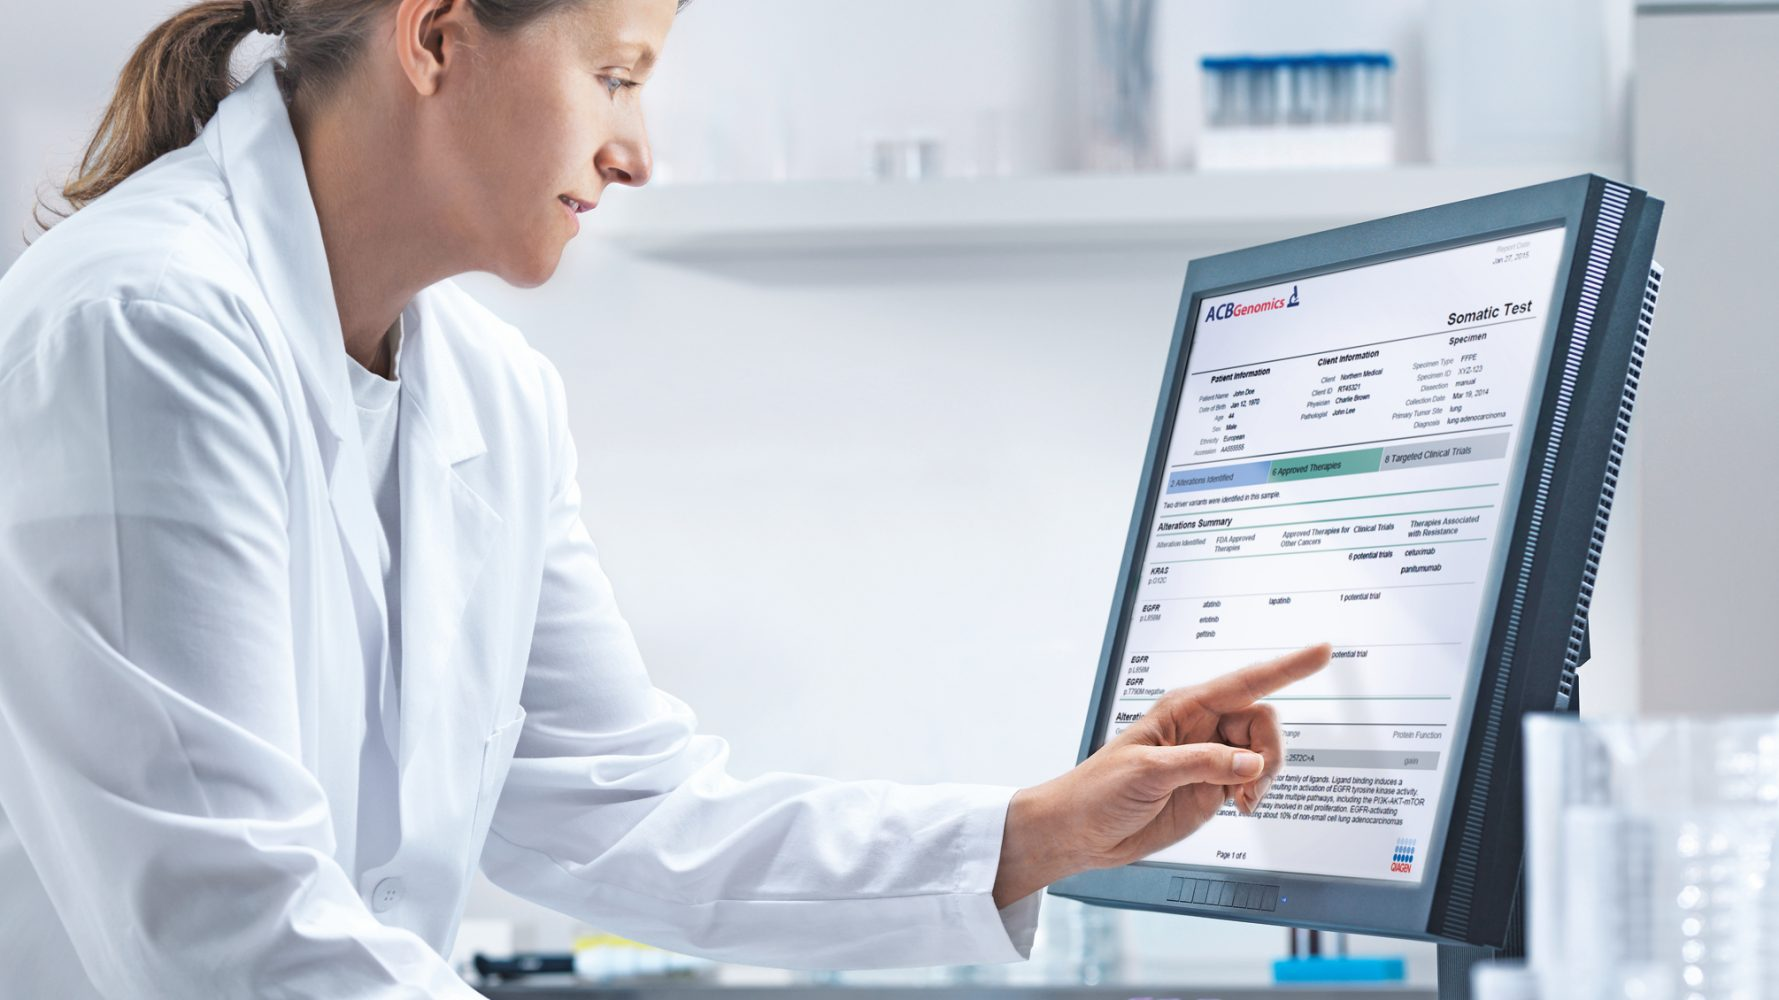 What makes the best clinical decision support tools so widely utilized?